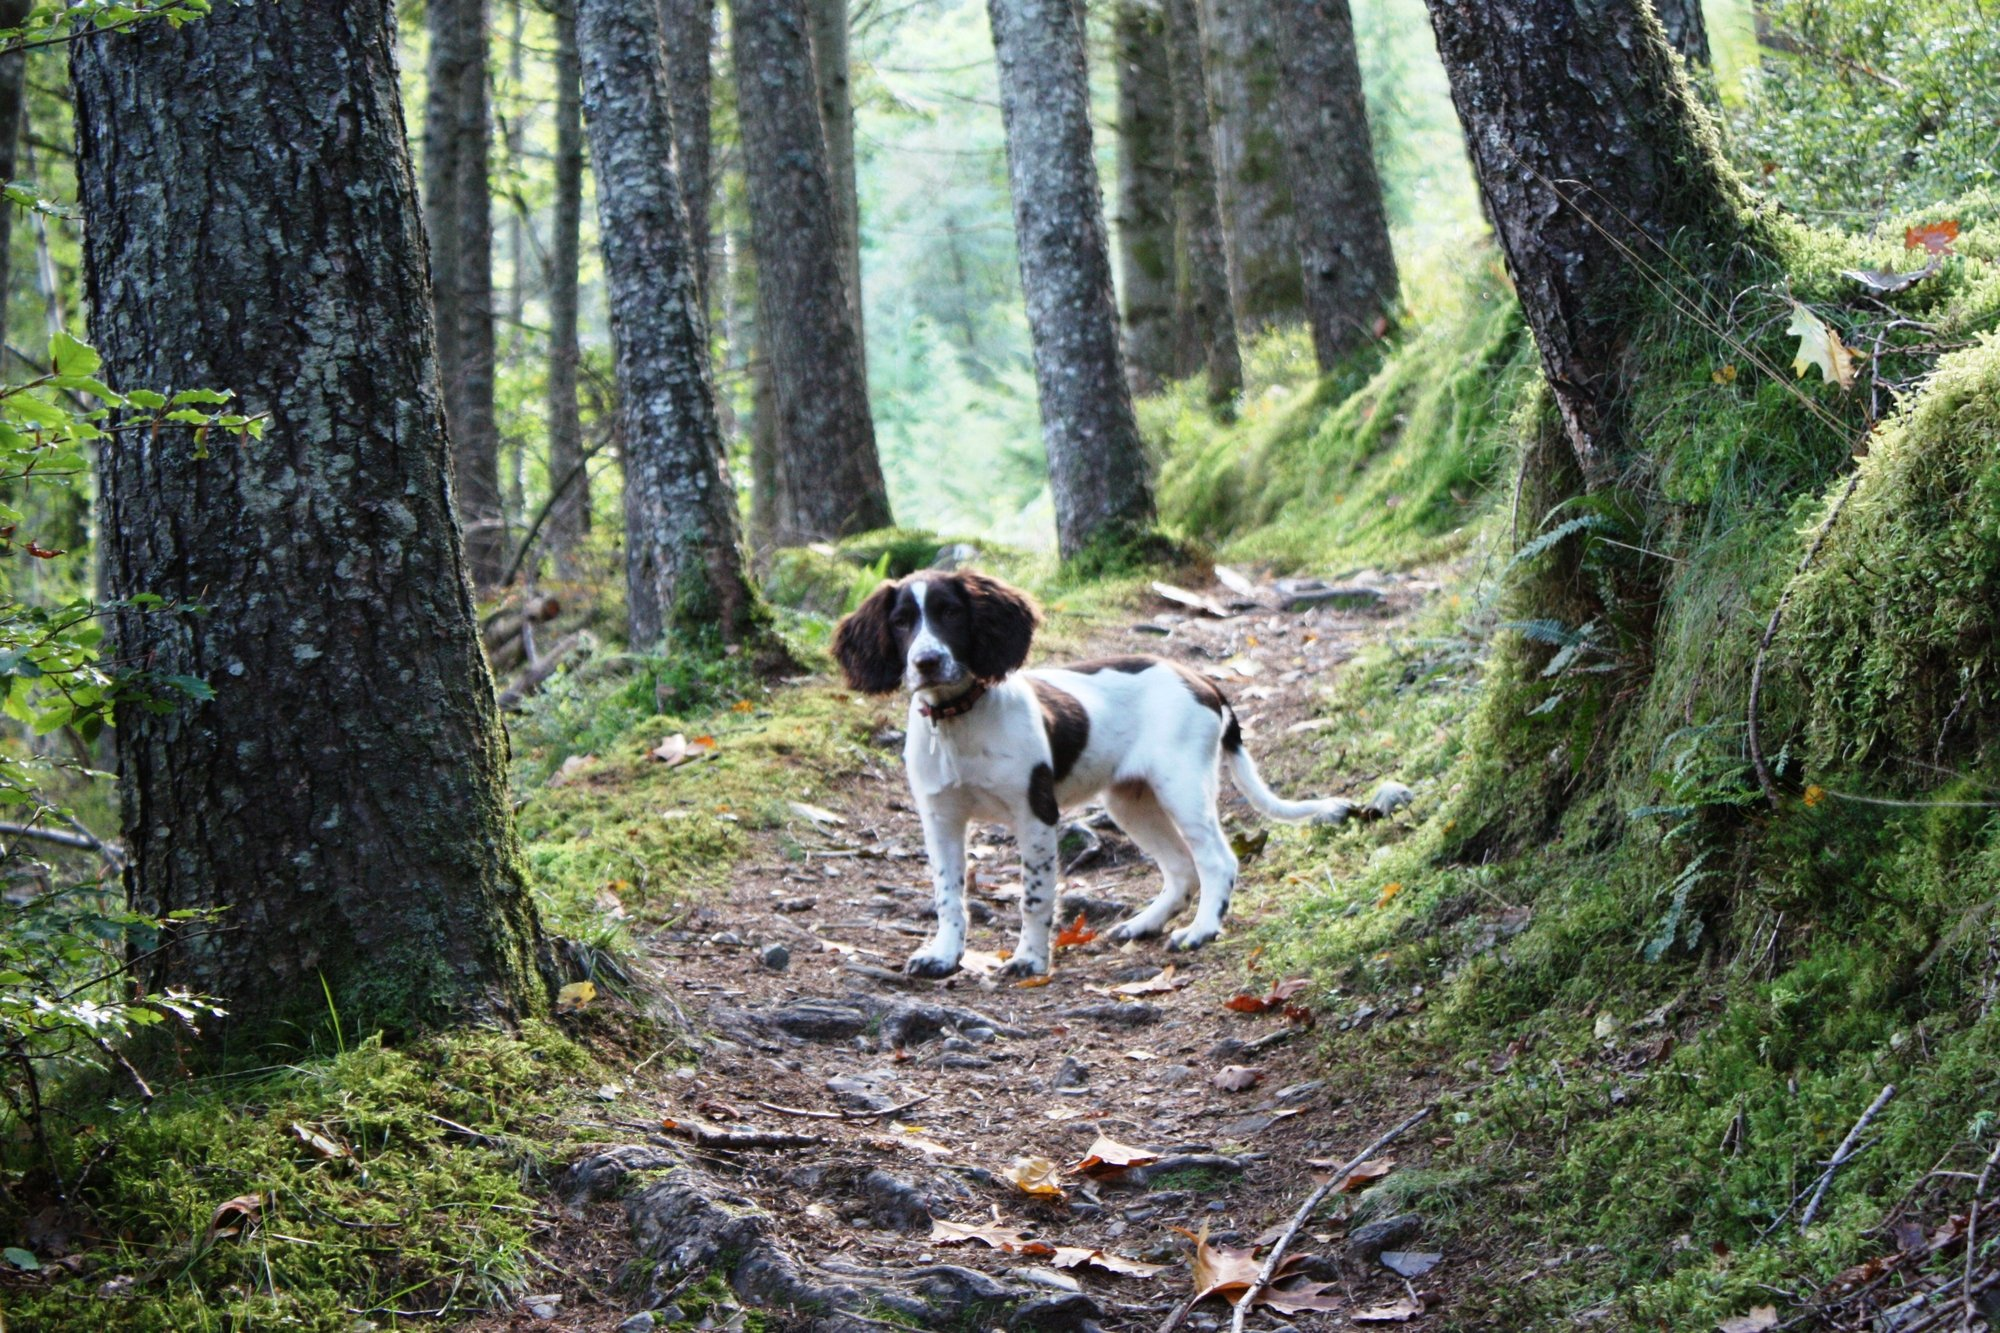 English Springer Spaniel puppy on a train in the woods.